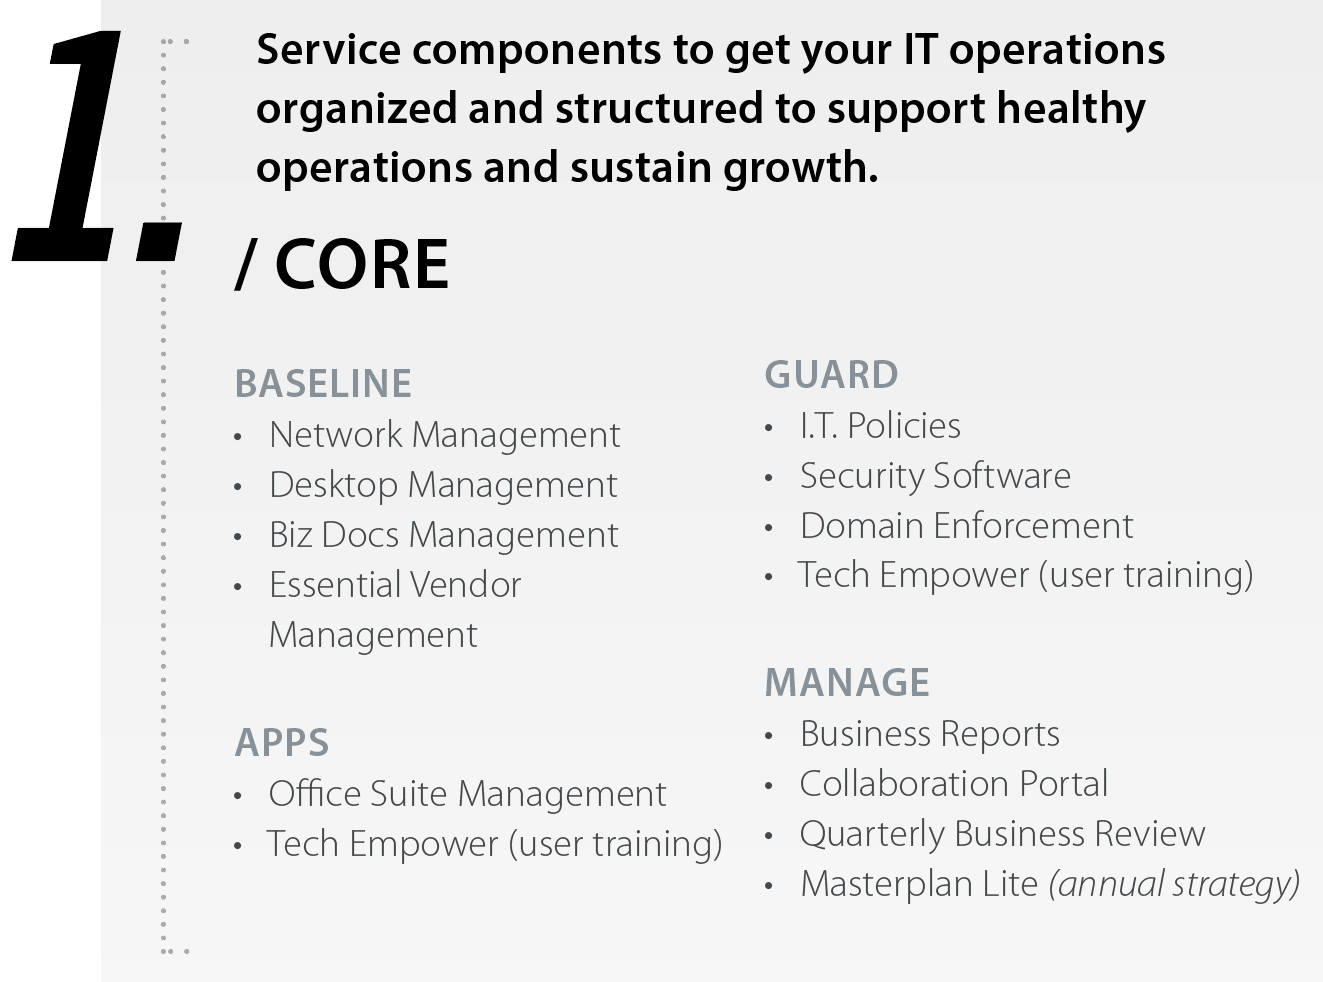 Core-1-JOT-Managed-Services